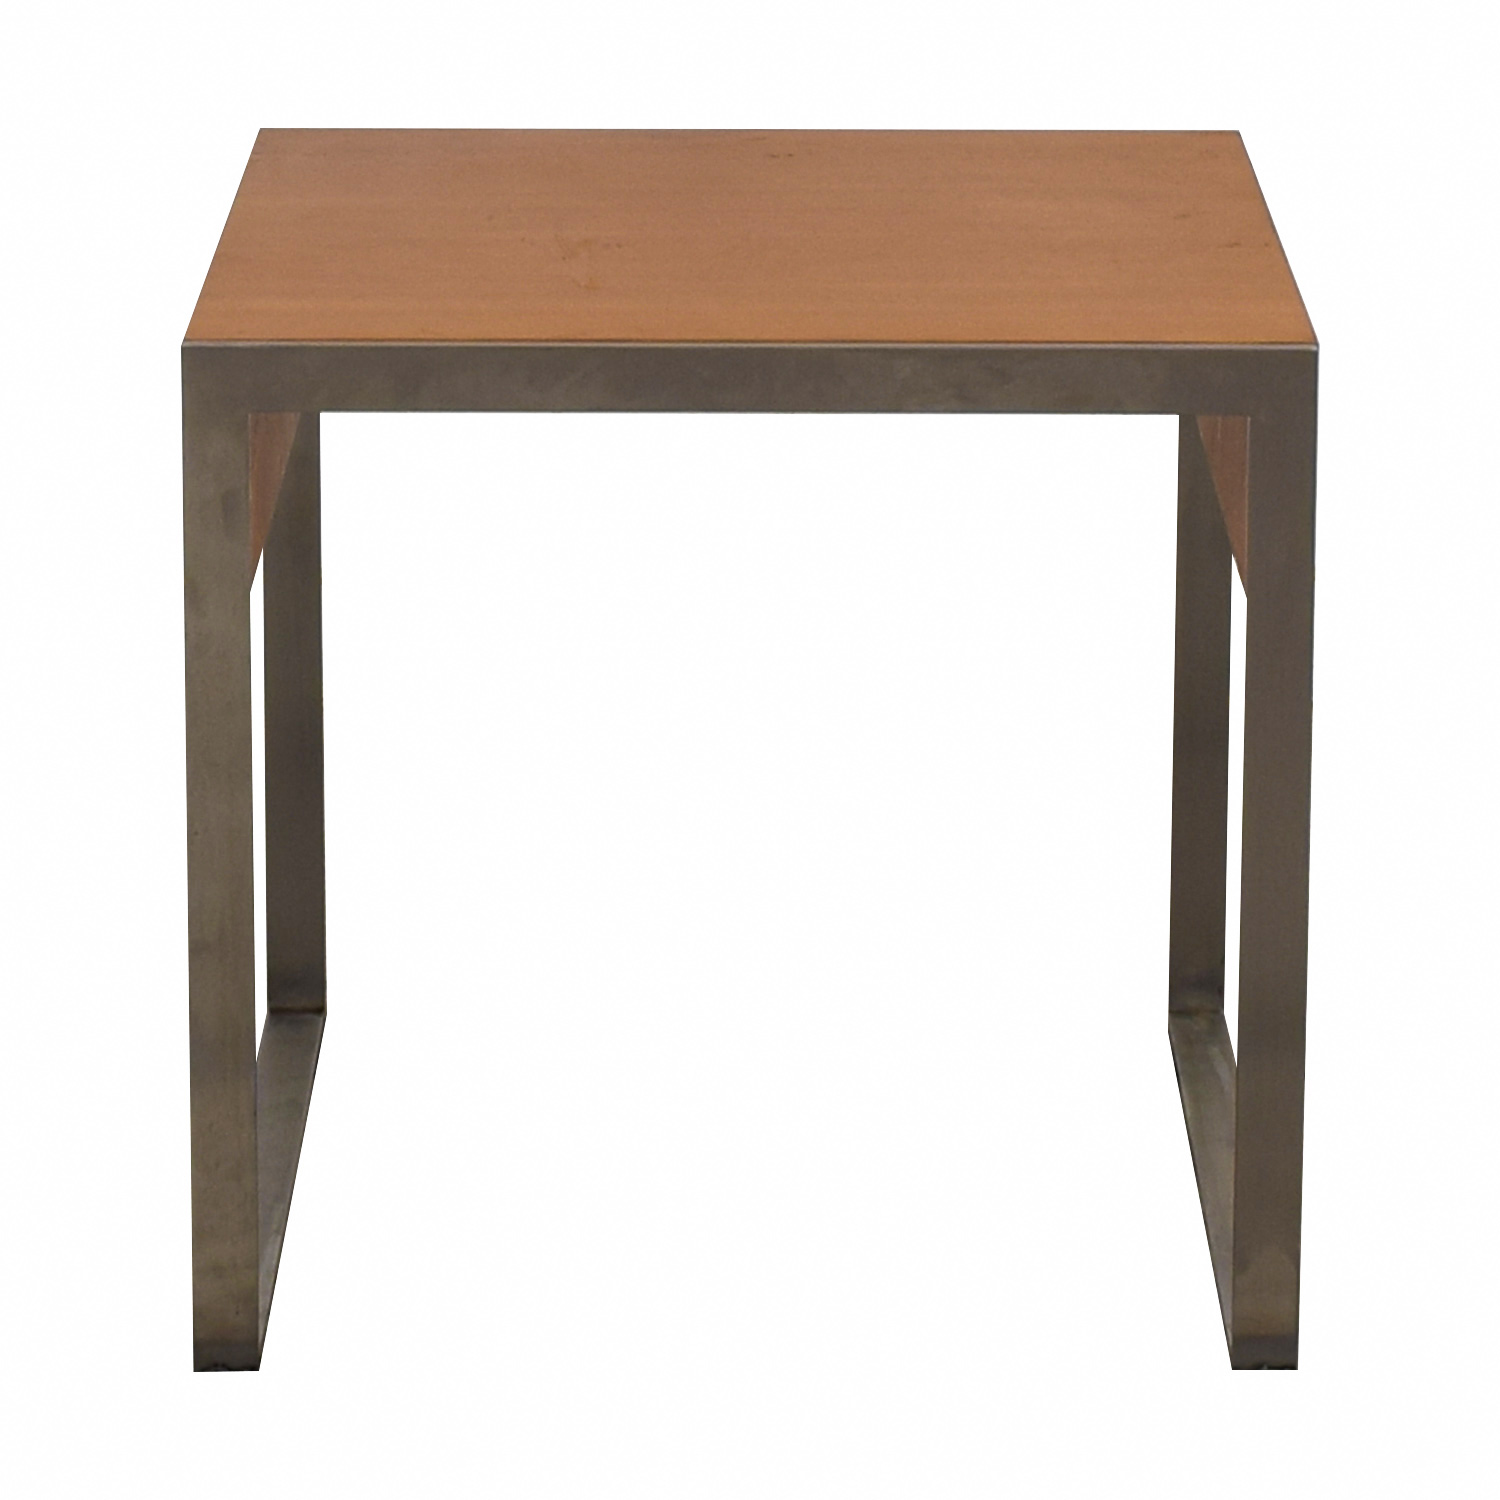 Bernhardt Square Occasional Side Table / Tables